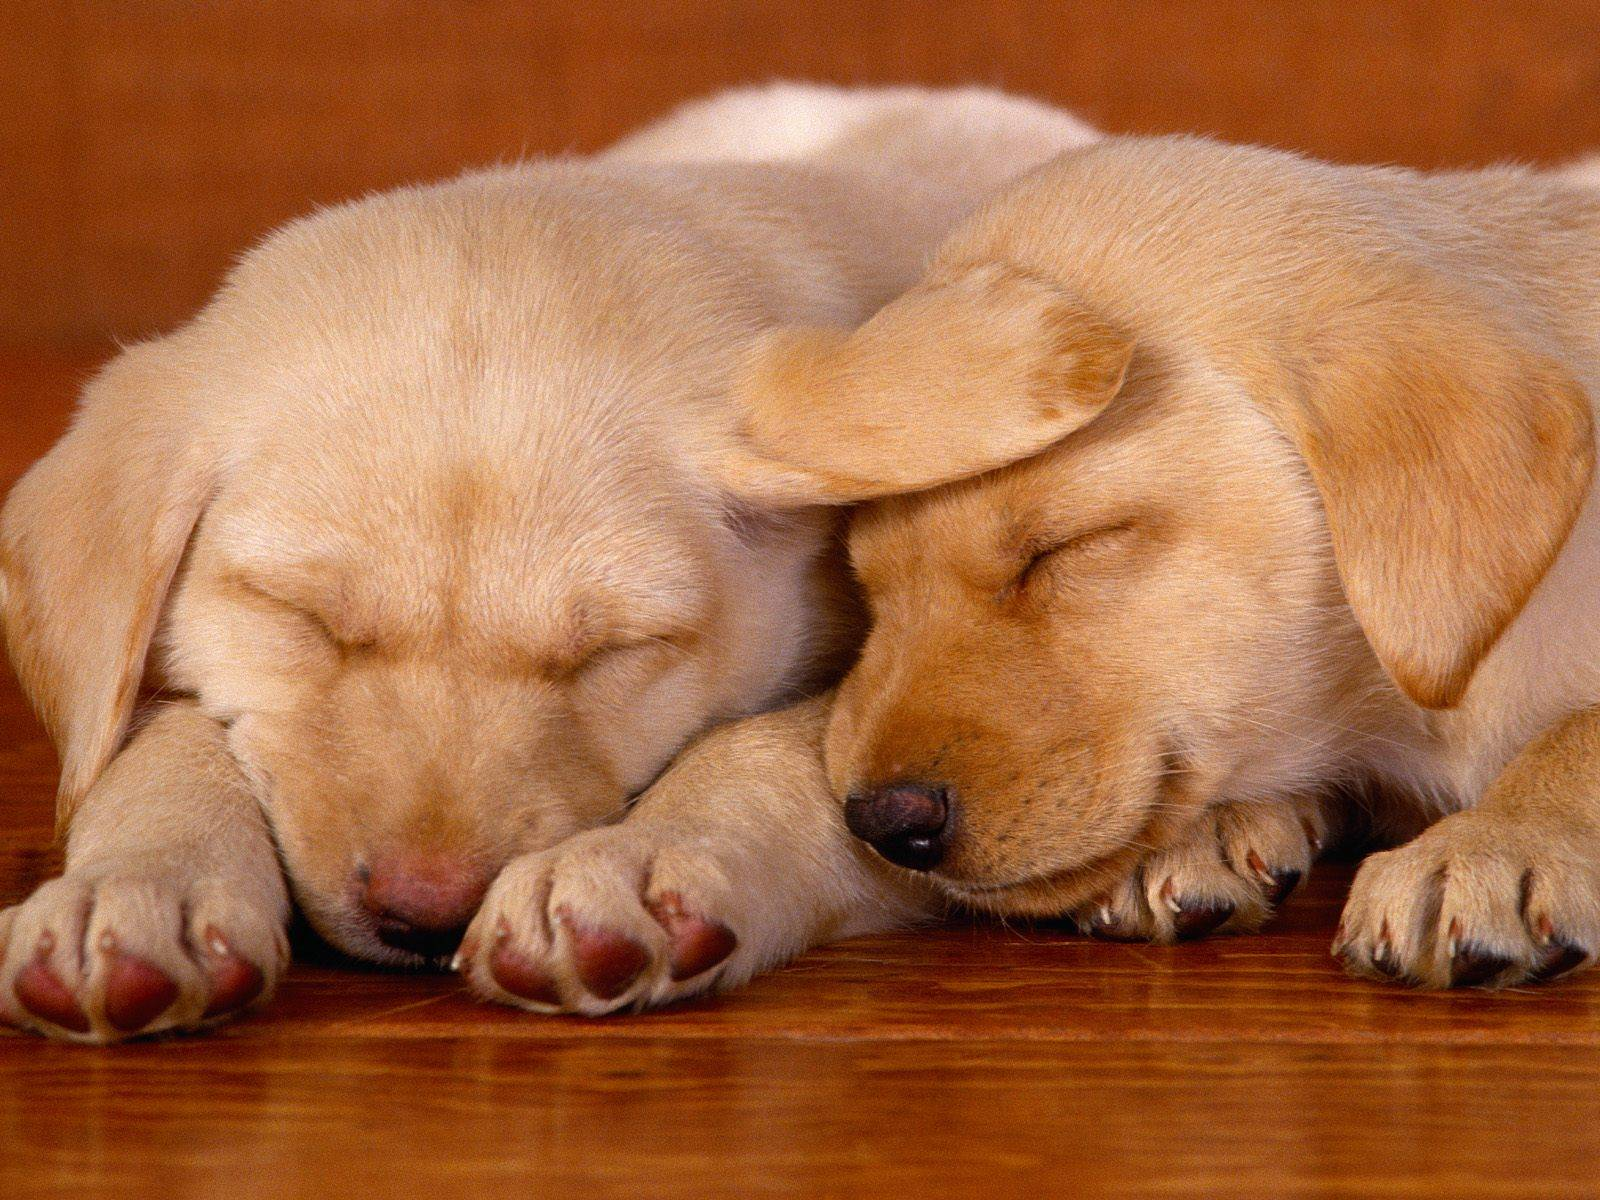 really cute dog   Dogs Wallpaper 1600x1200